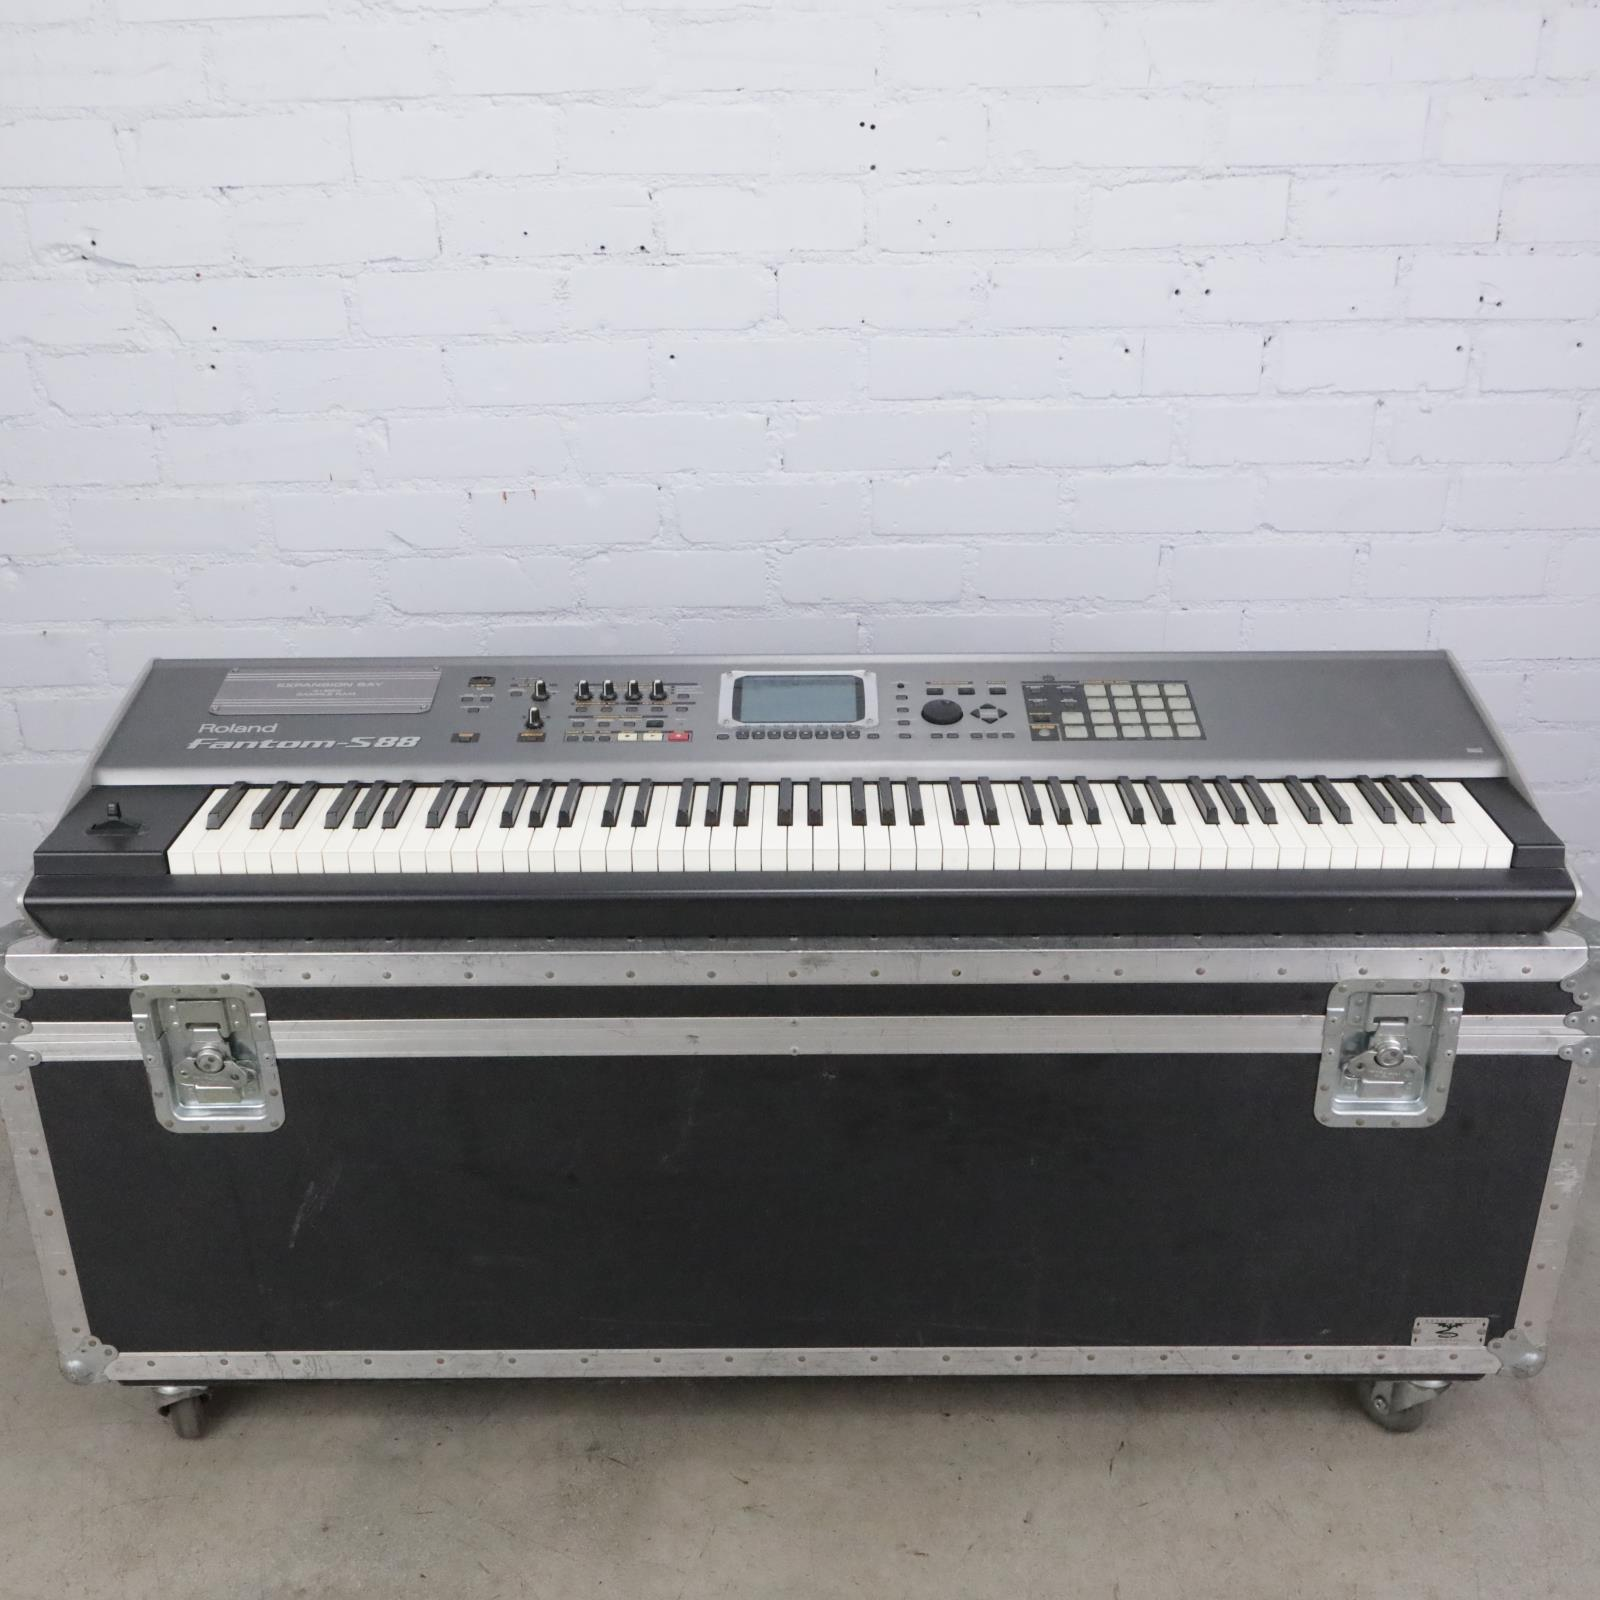 Roland Fantom S88 Workstation Keyboard w/ Road Case #41594